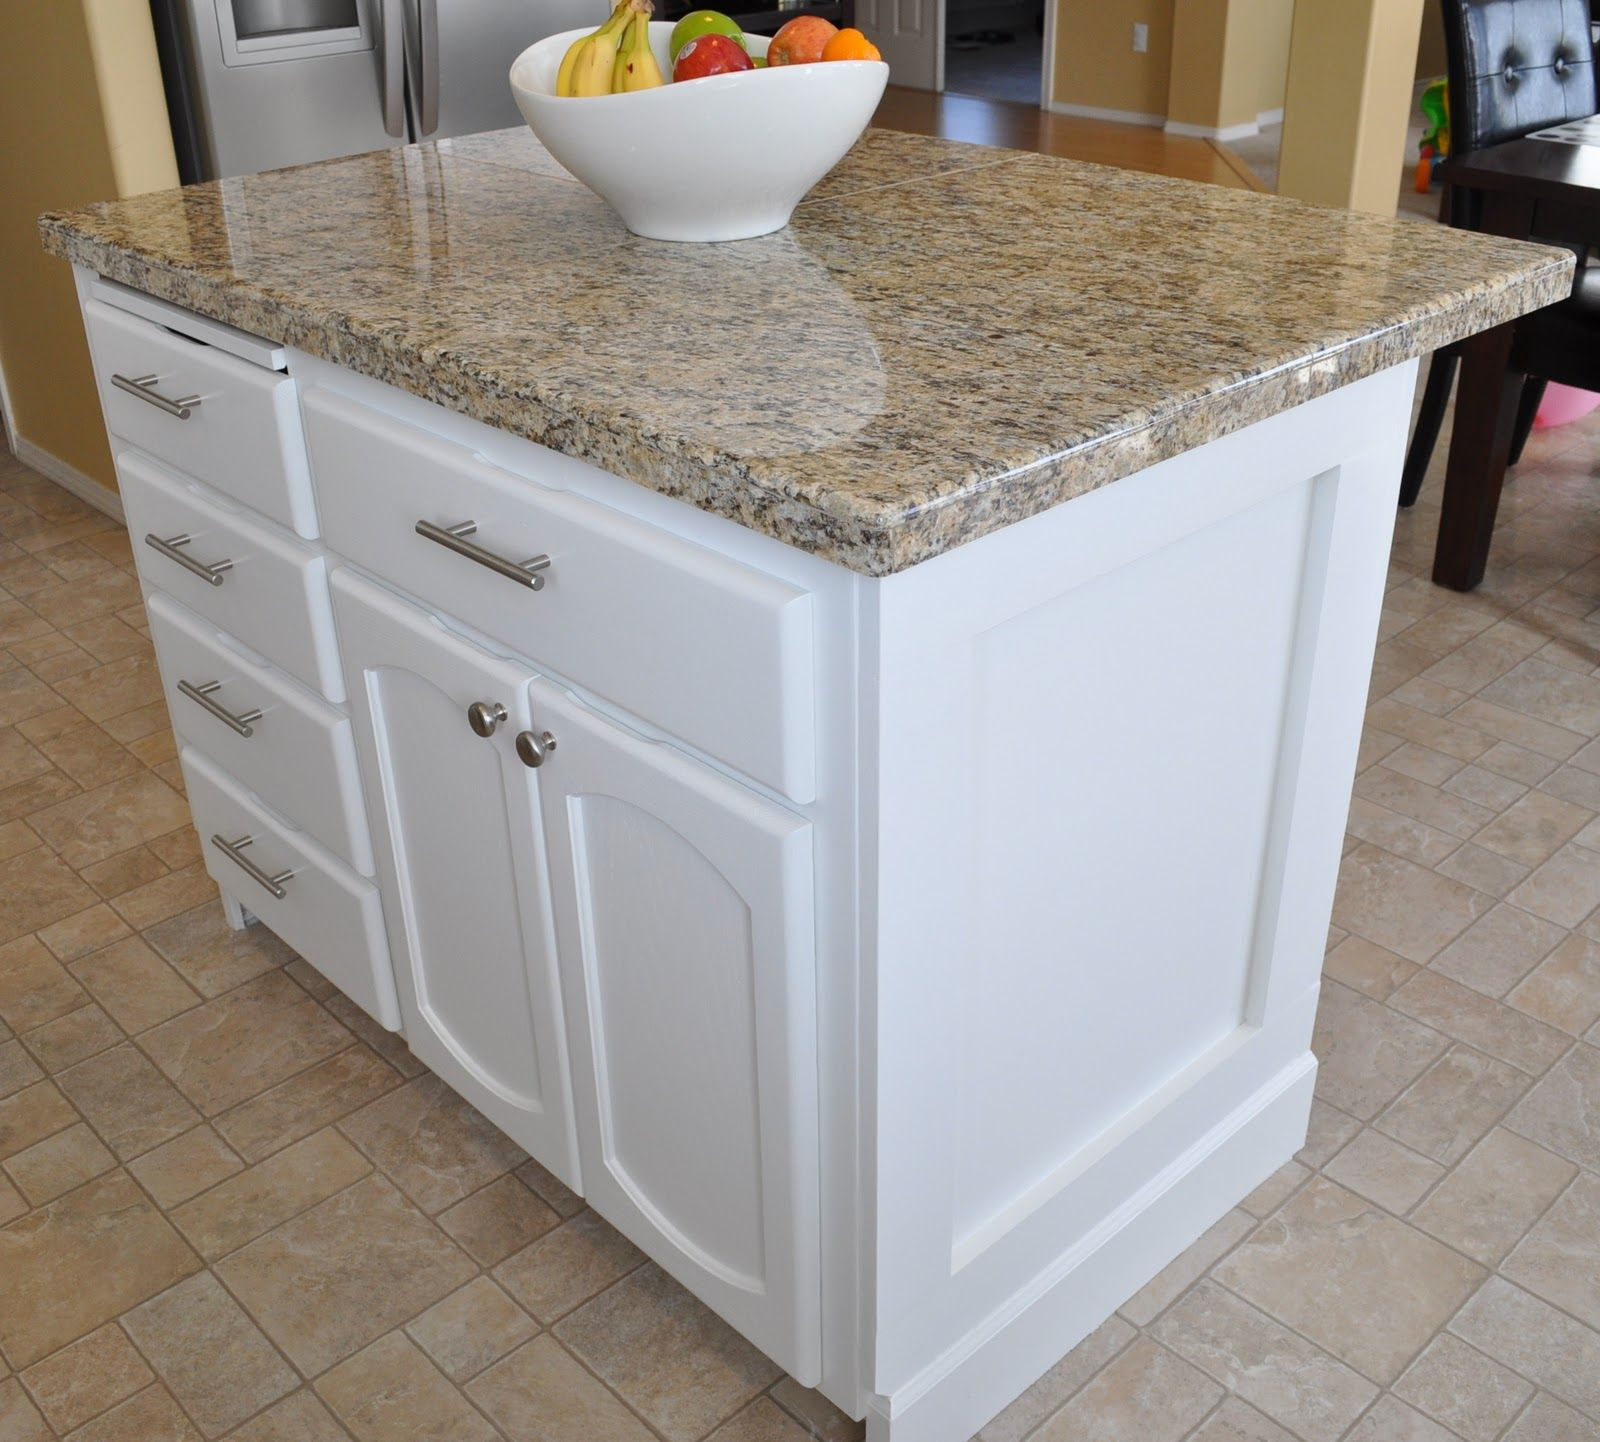 Lowe\'s Kitchen Islands   ... goodness) and look at the gorgeous ...